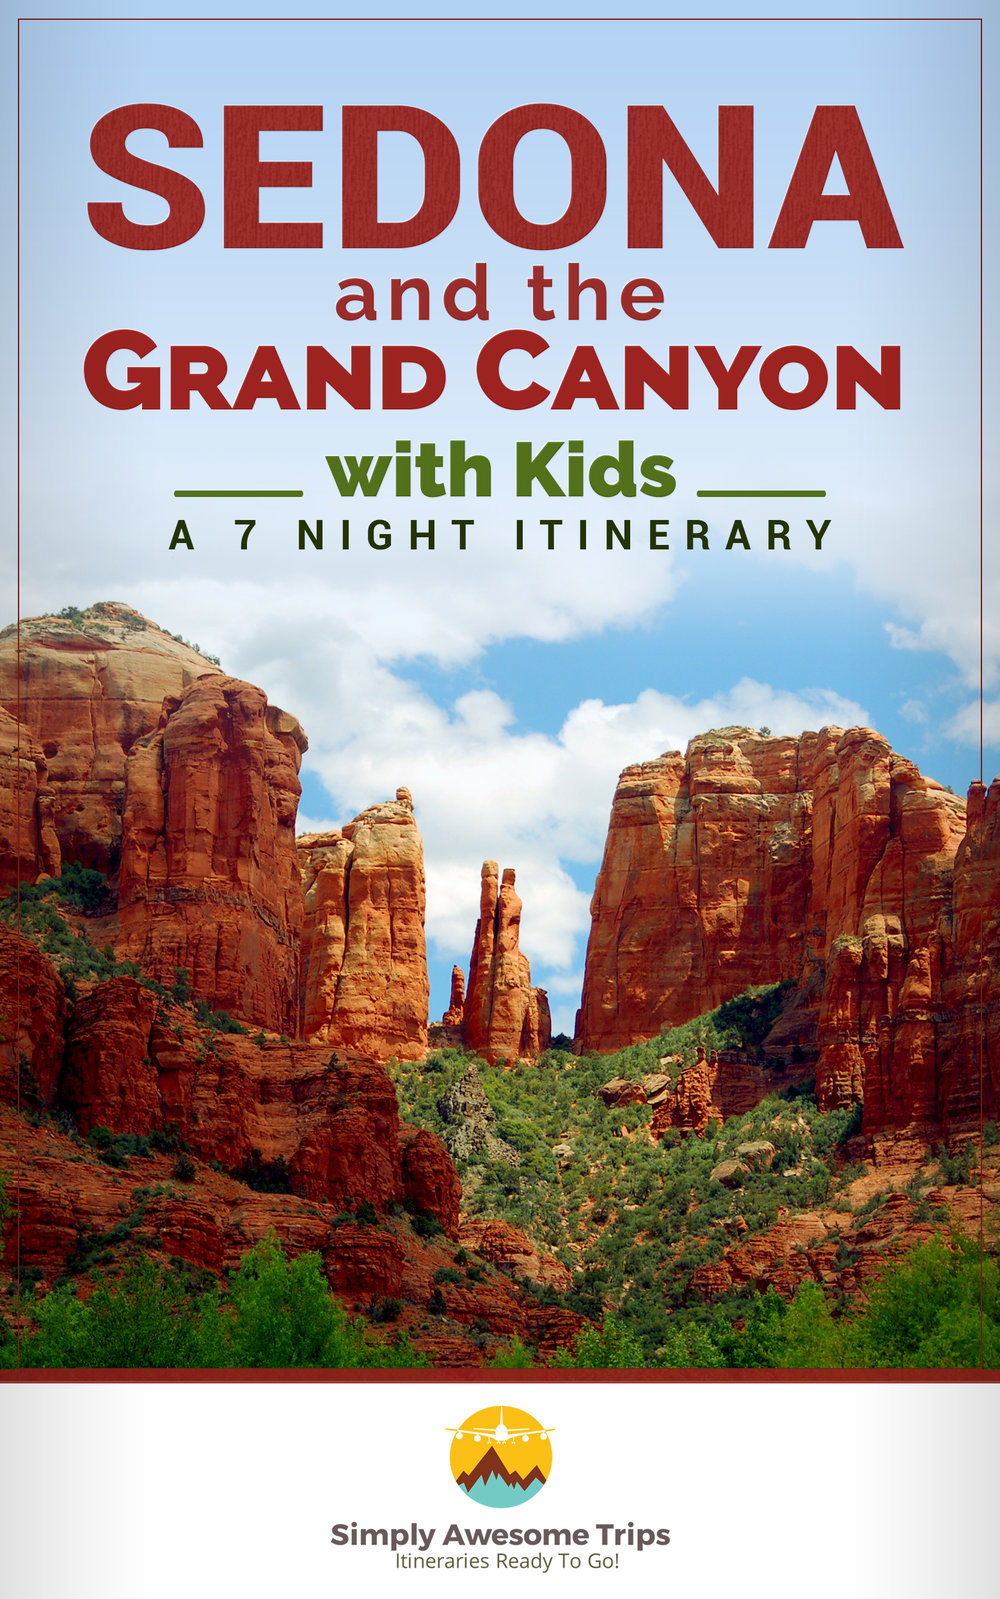 Sedona and the Grand Canyon